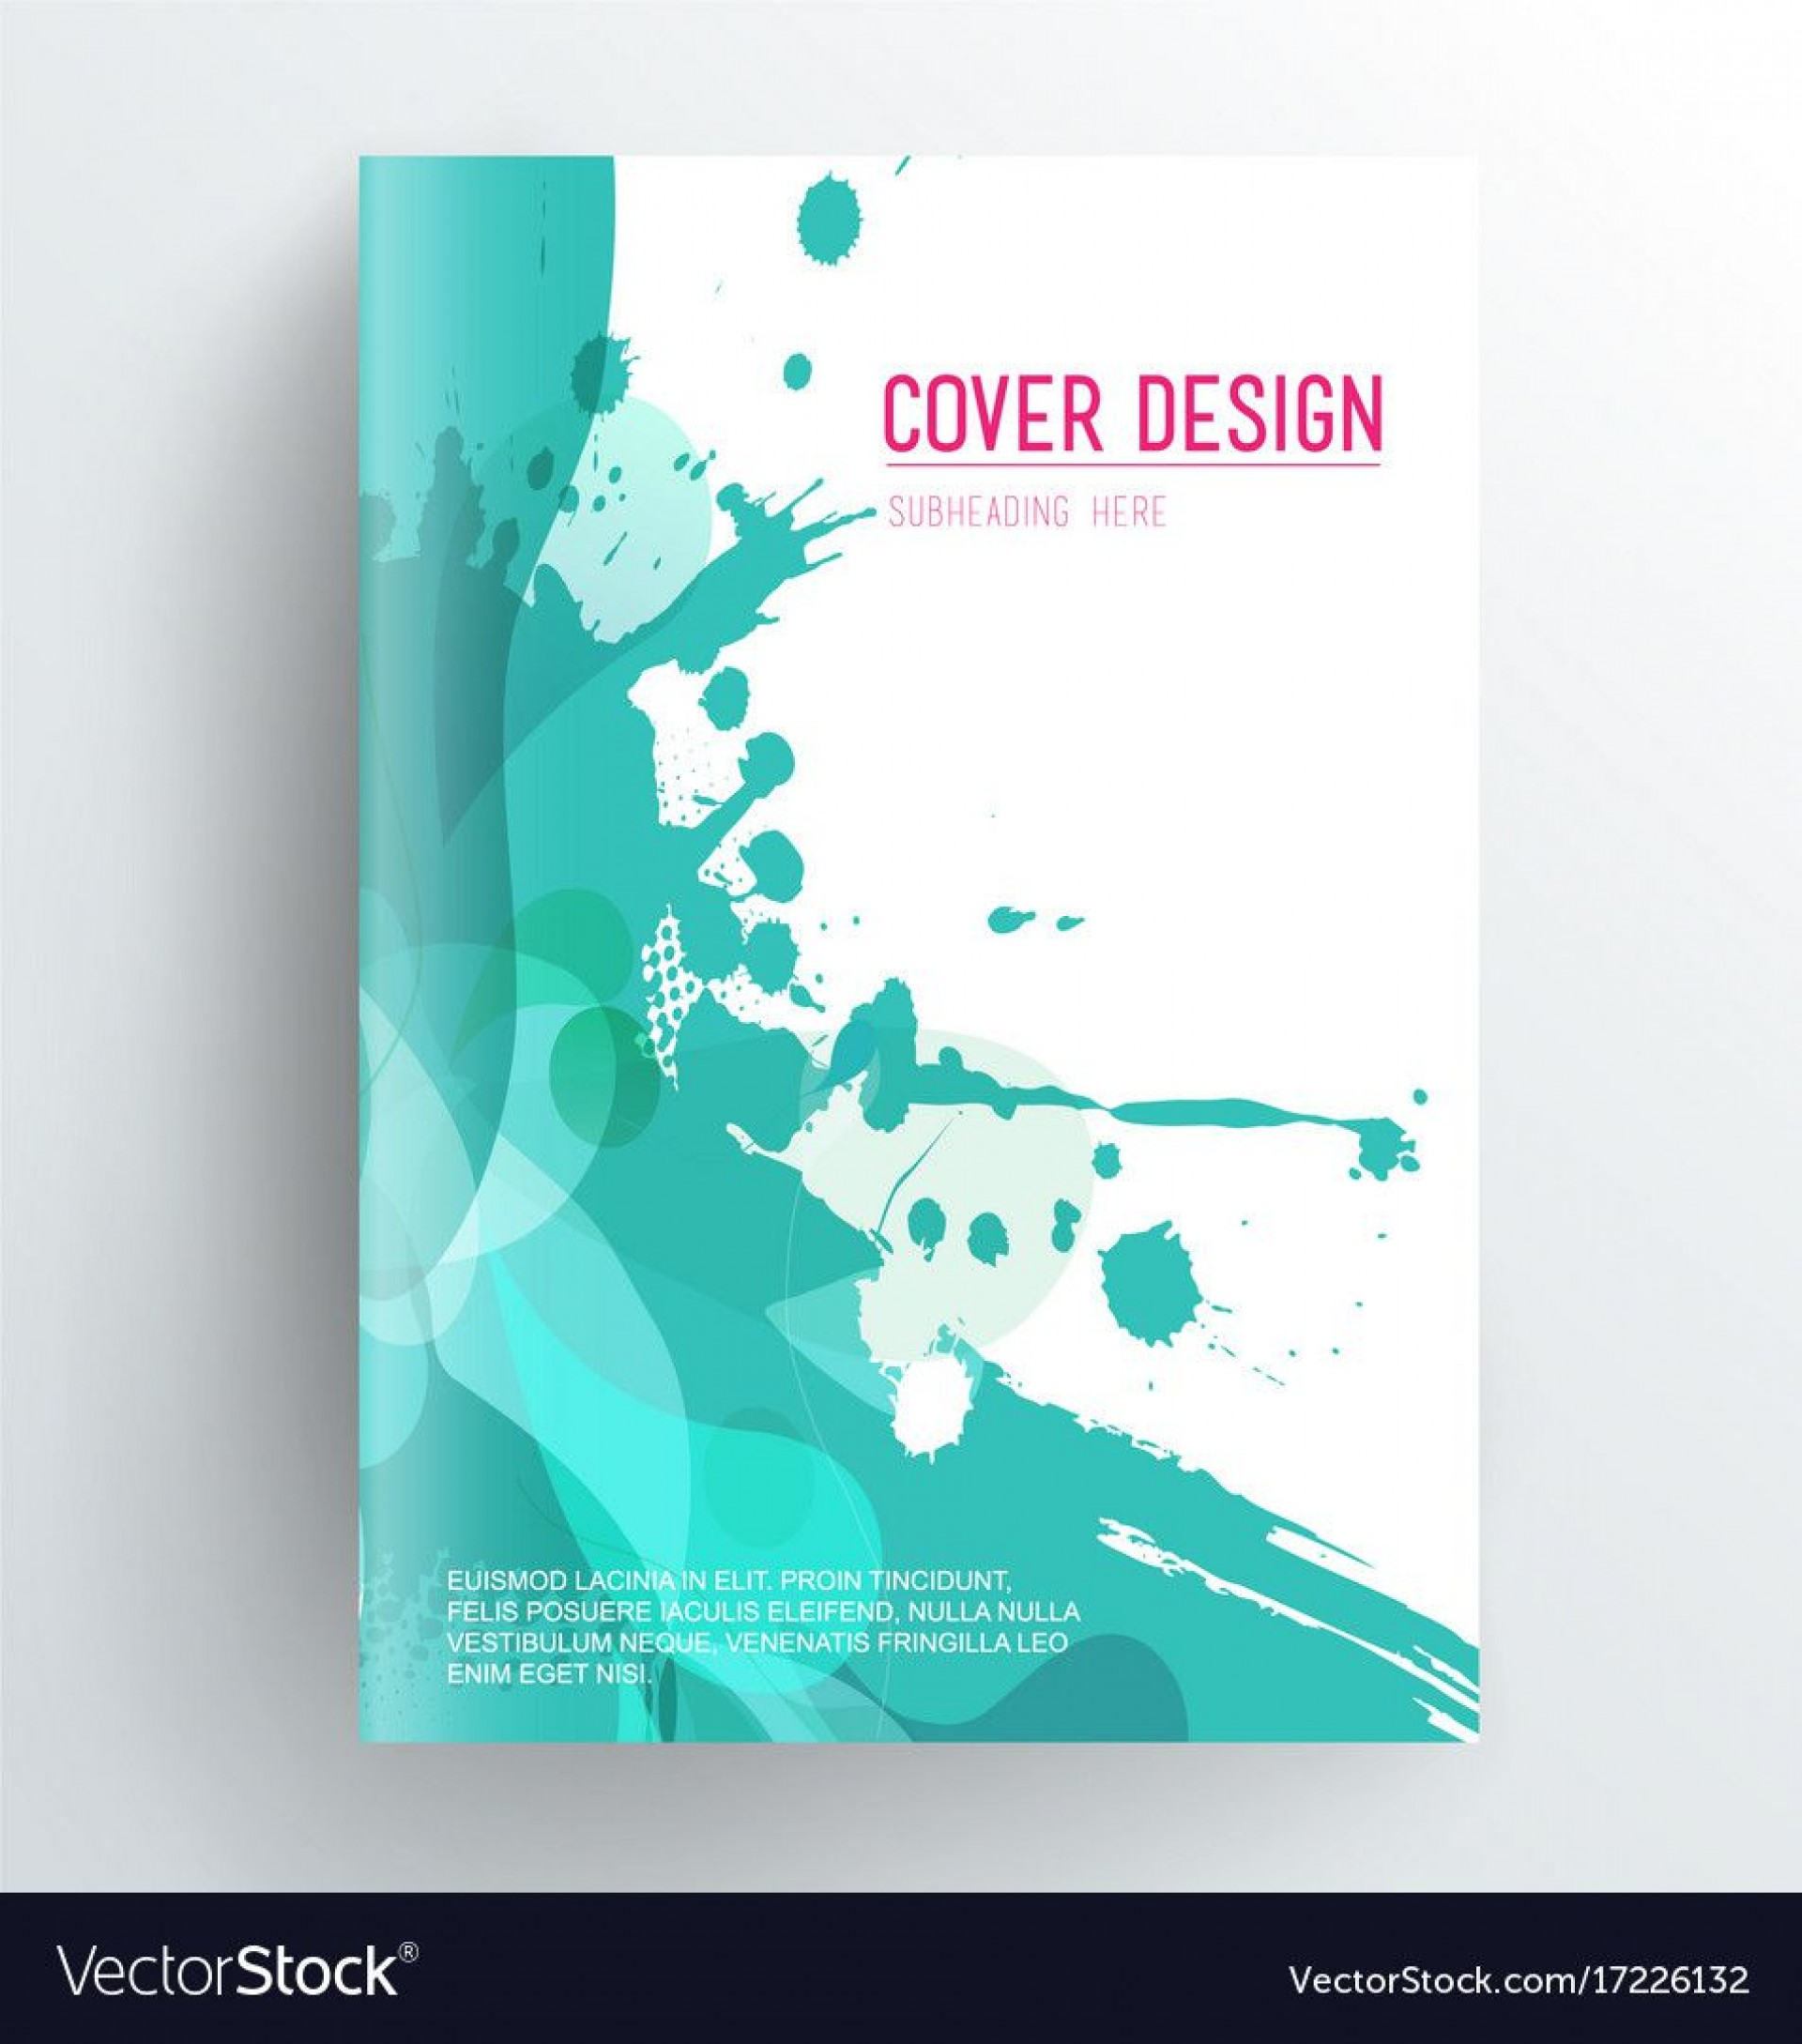 007 Incredible Book Cover Page Design Template Free Download Sample  Front1920